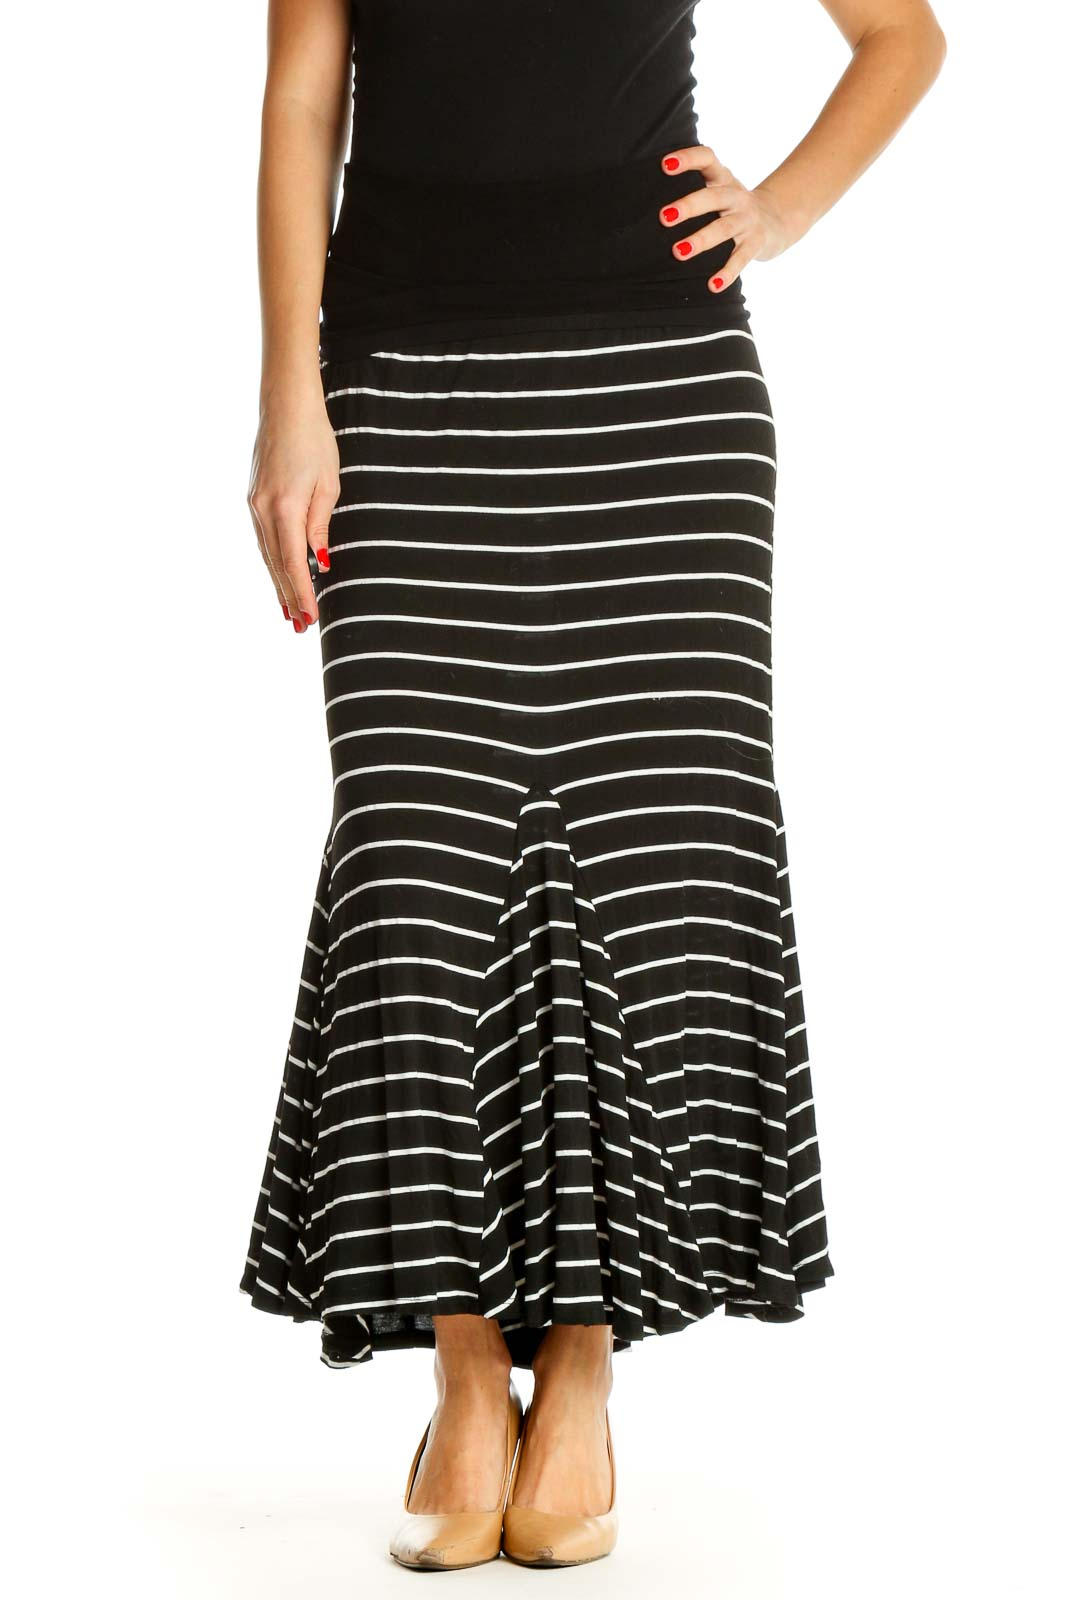 Black Striped Casual Flared Skirt Front